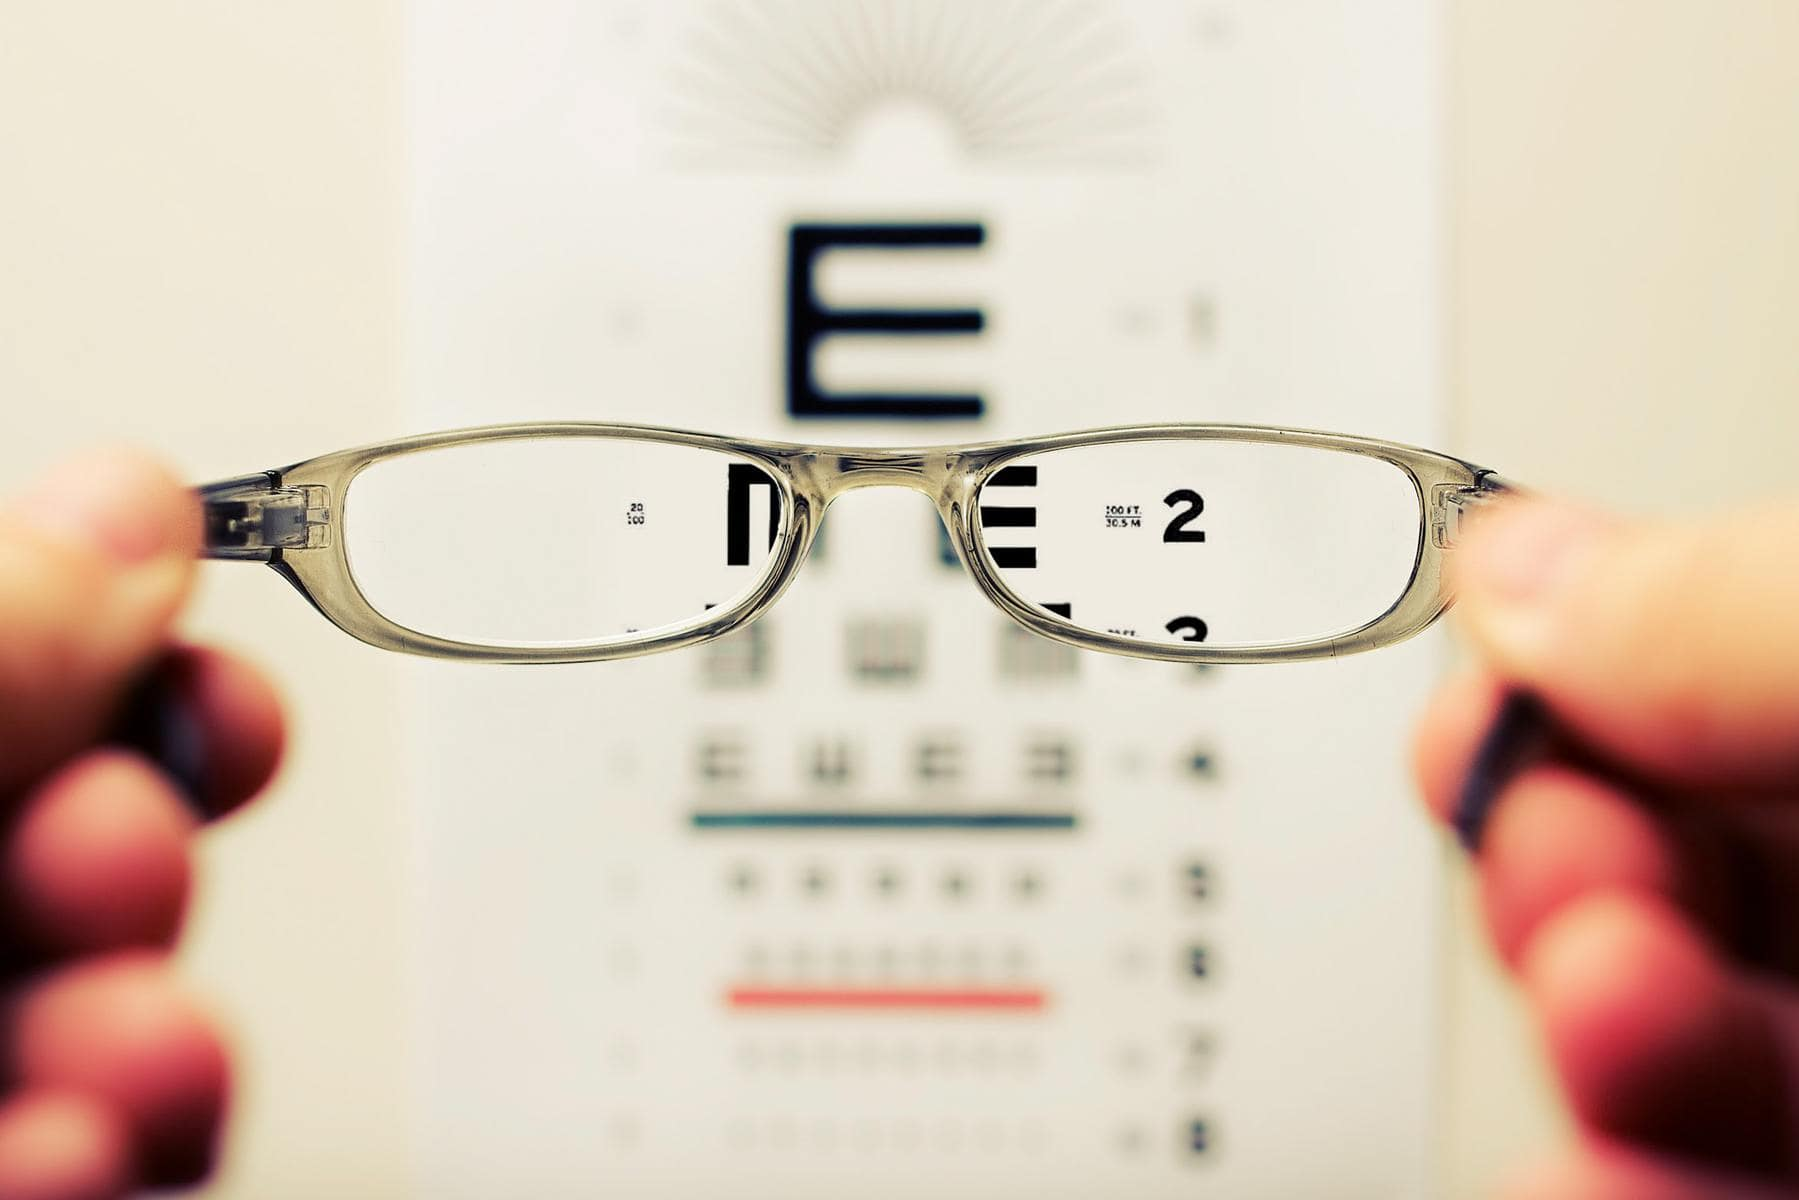 Image description: Eye chart seen through lenses of glasses; in the lenses the chart is in focus, otherwise it is blurry. Credit David Travis on Unsplash.